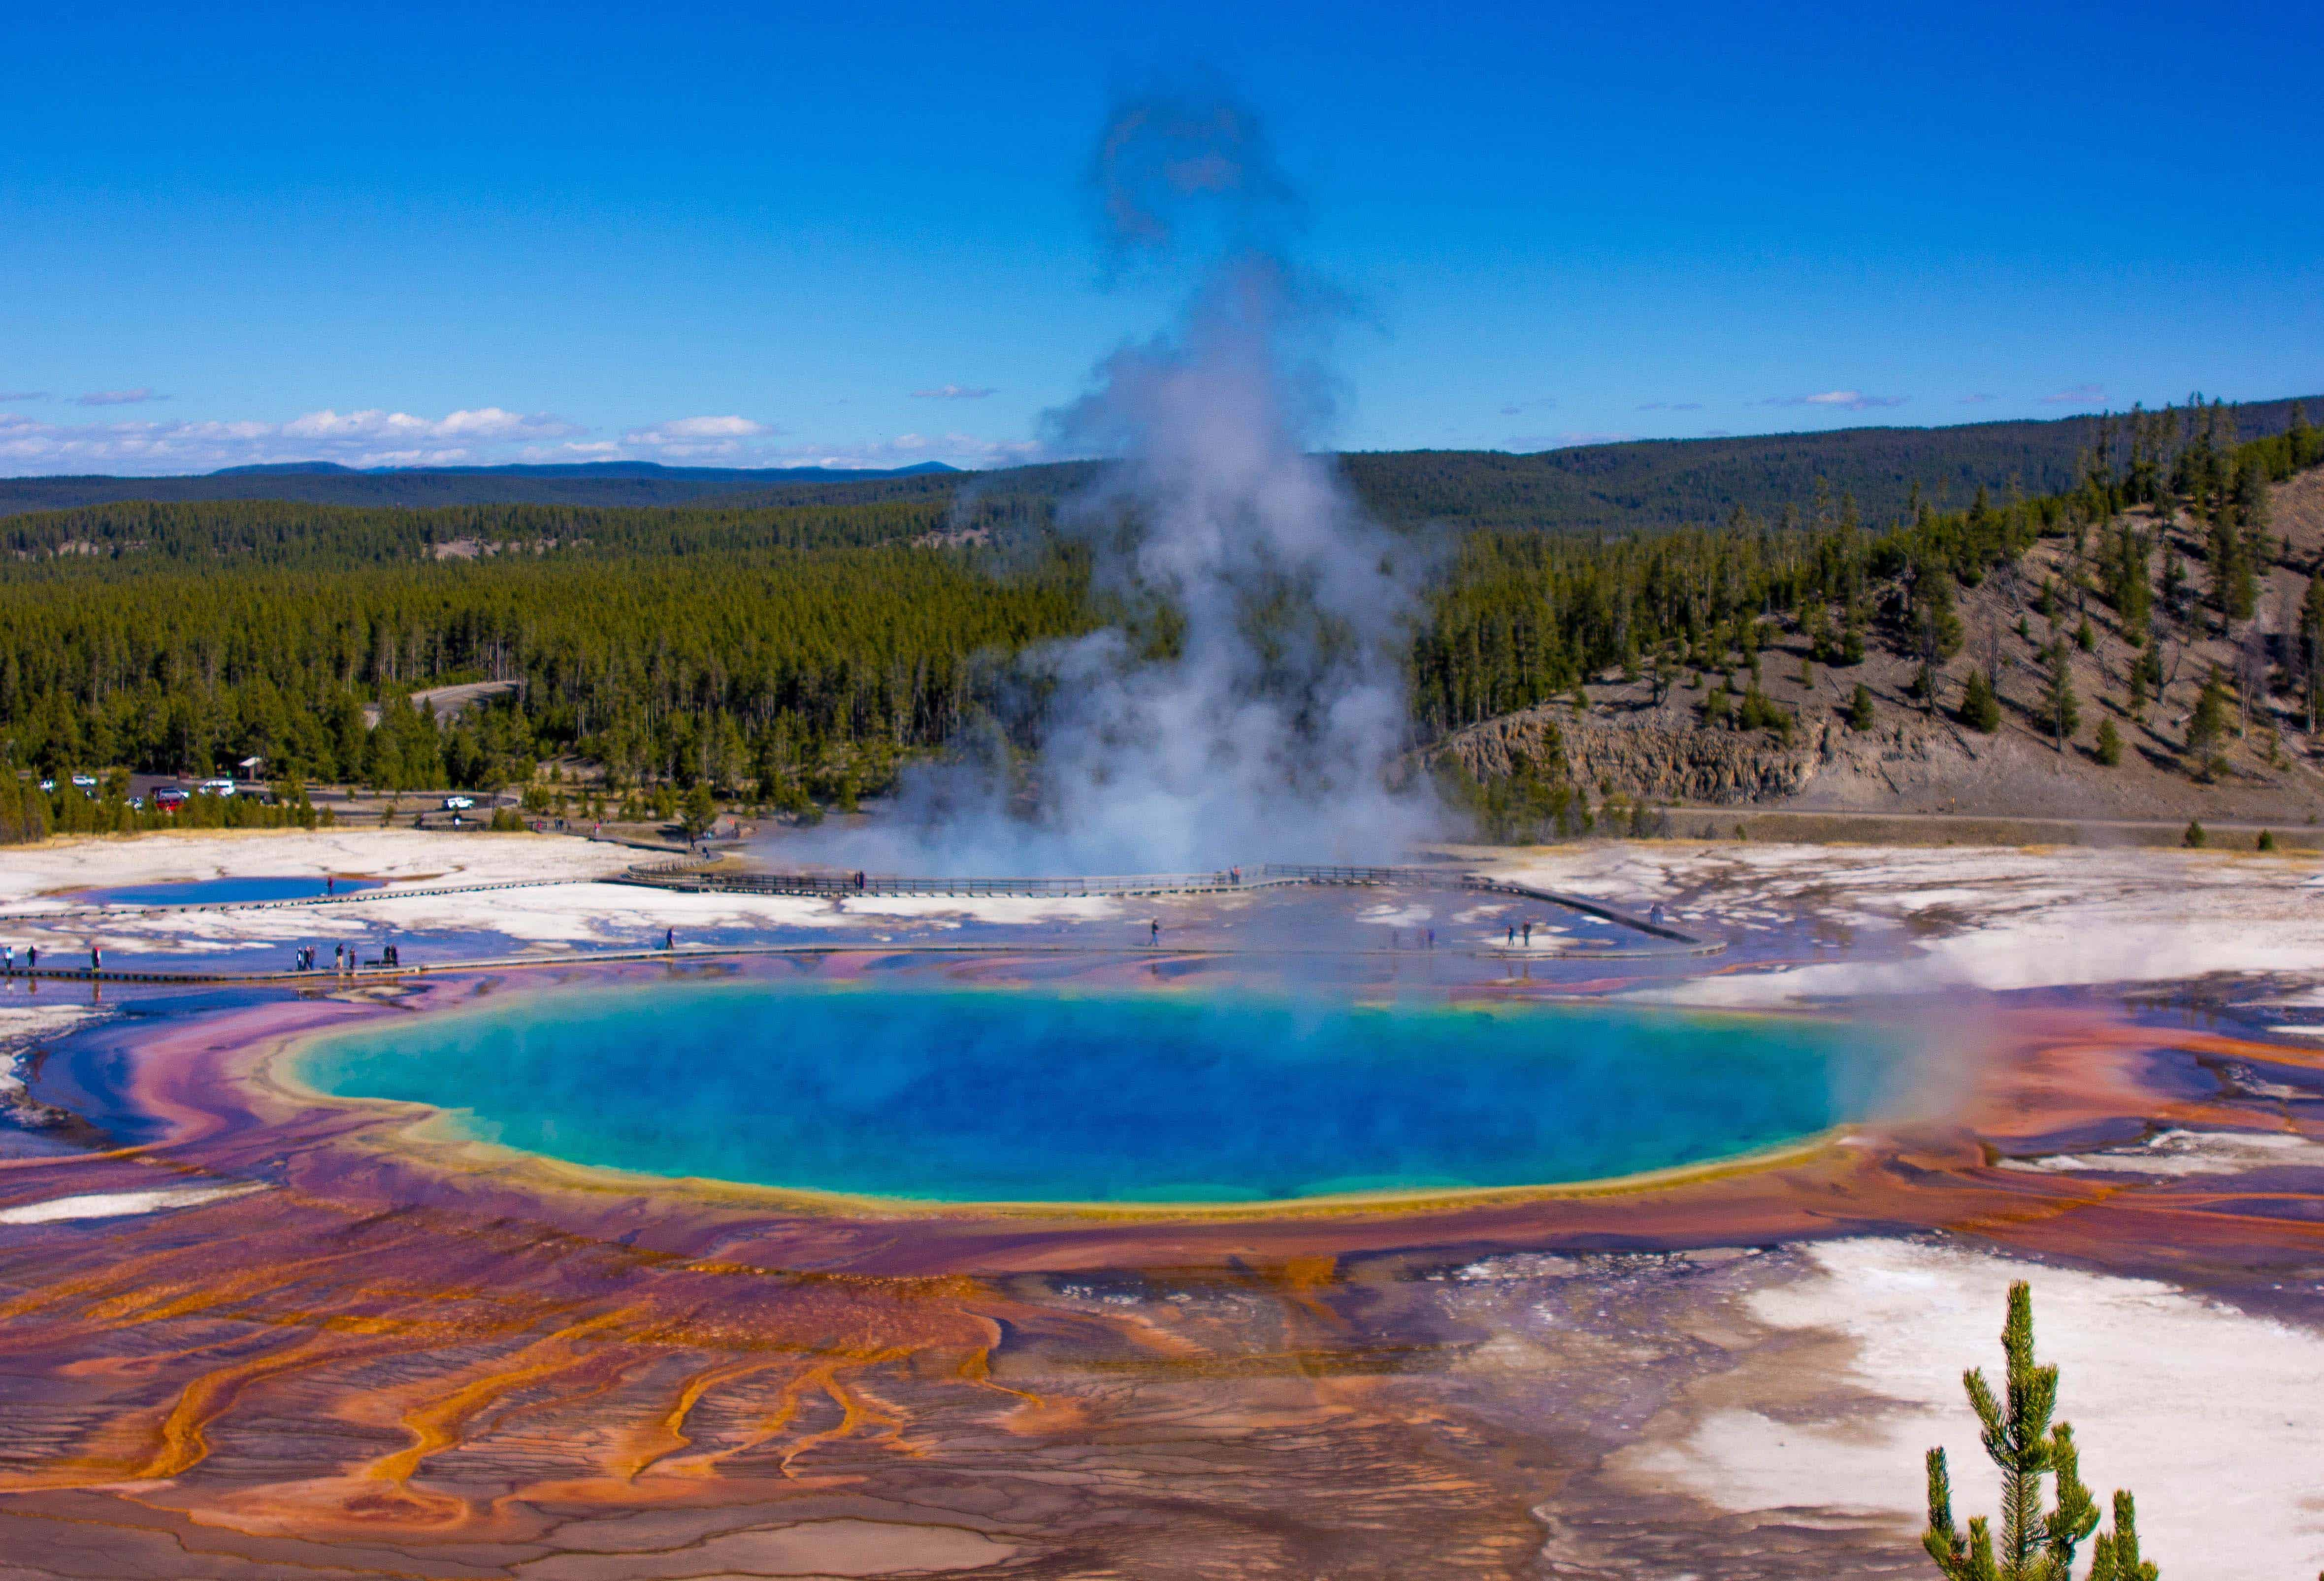 microbes animals and a super volcano my love with a